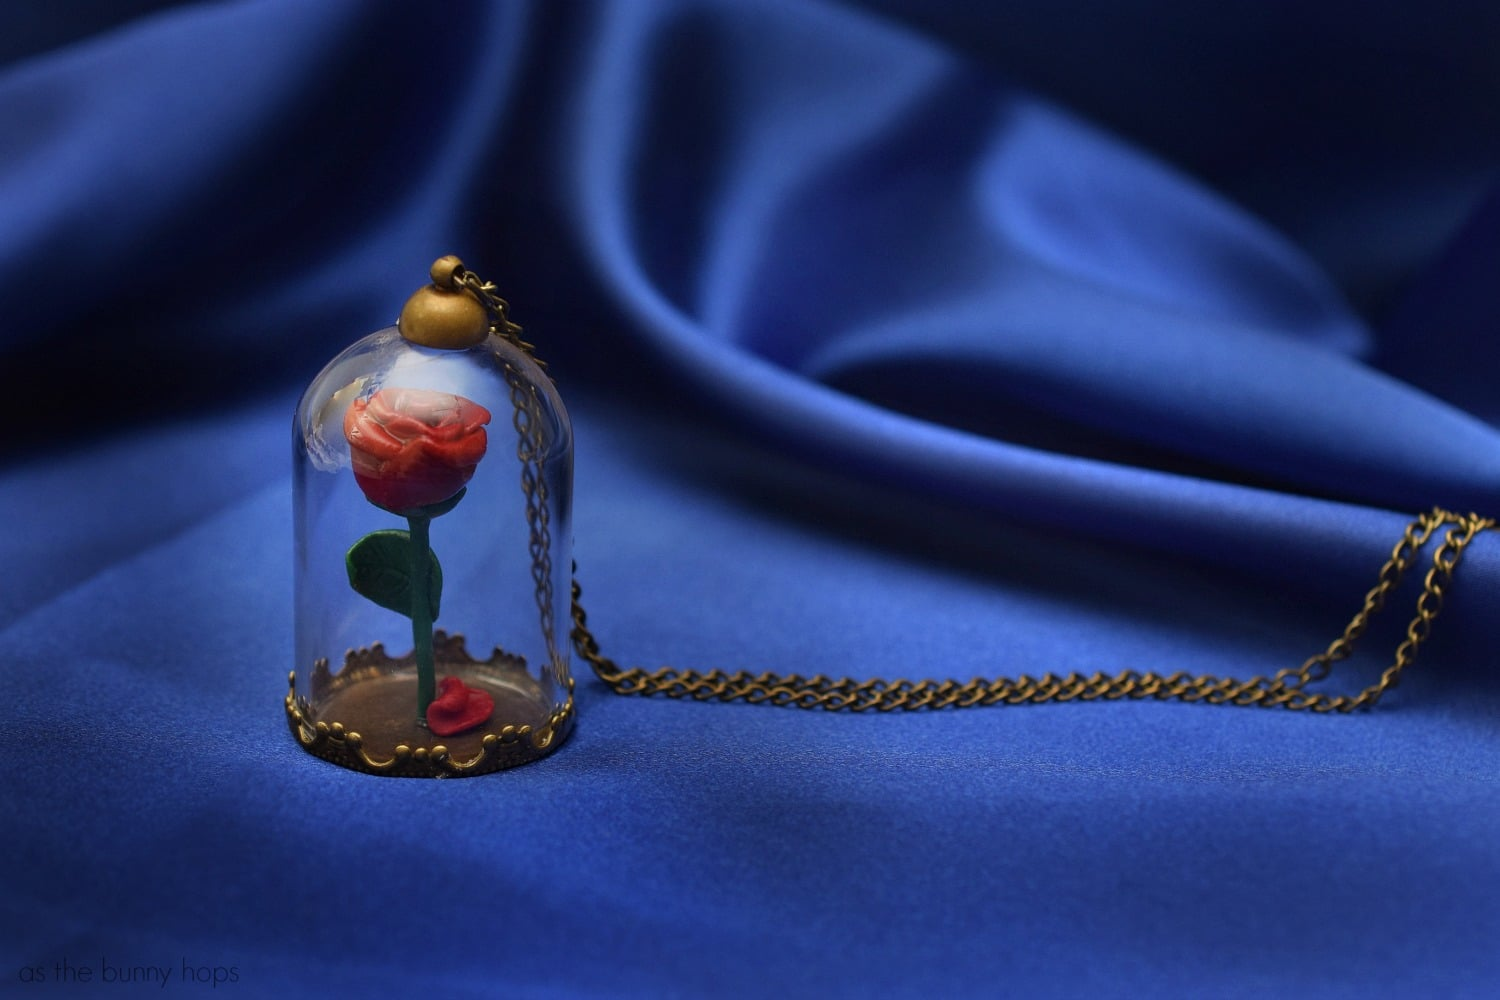 Beauty And The Beast Enchanted Rose Pendant As The Bunny